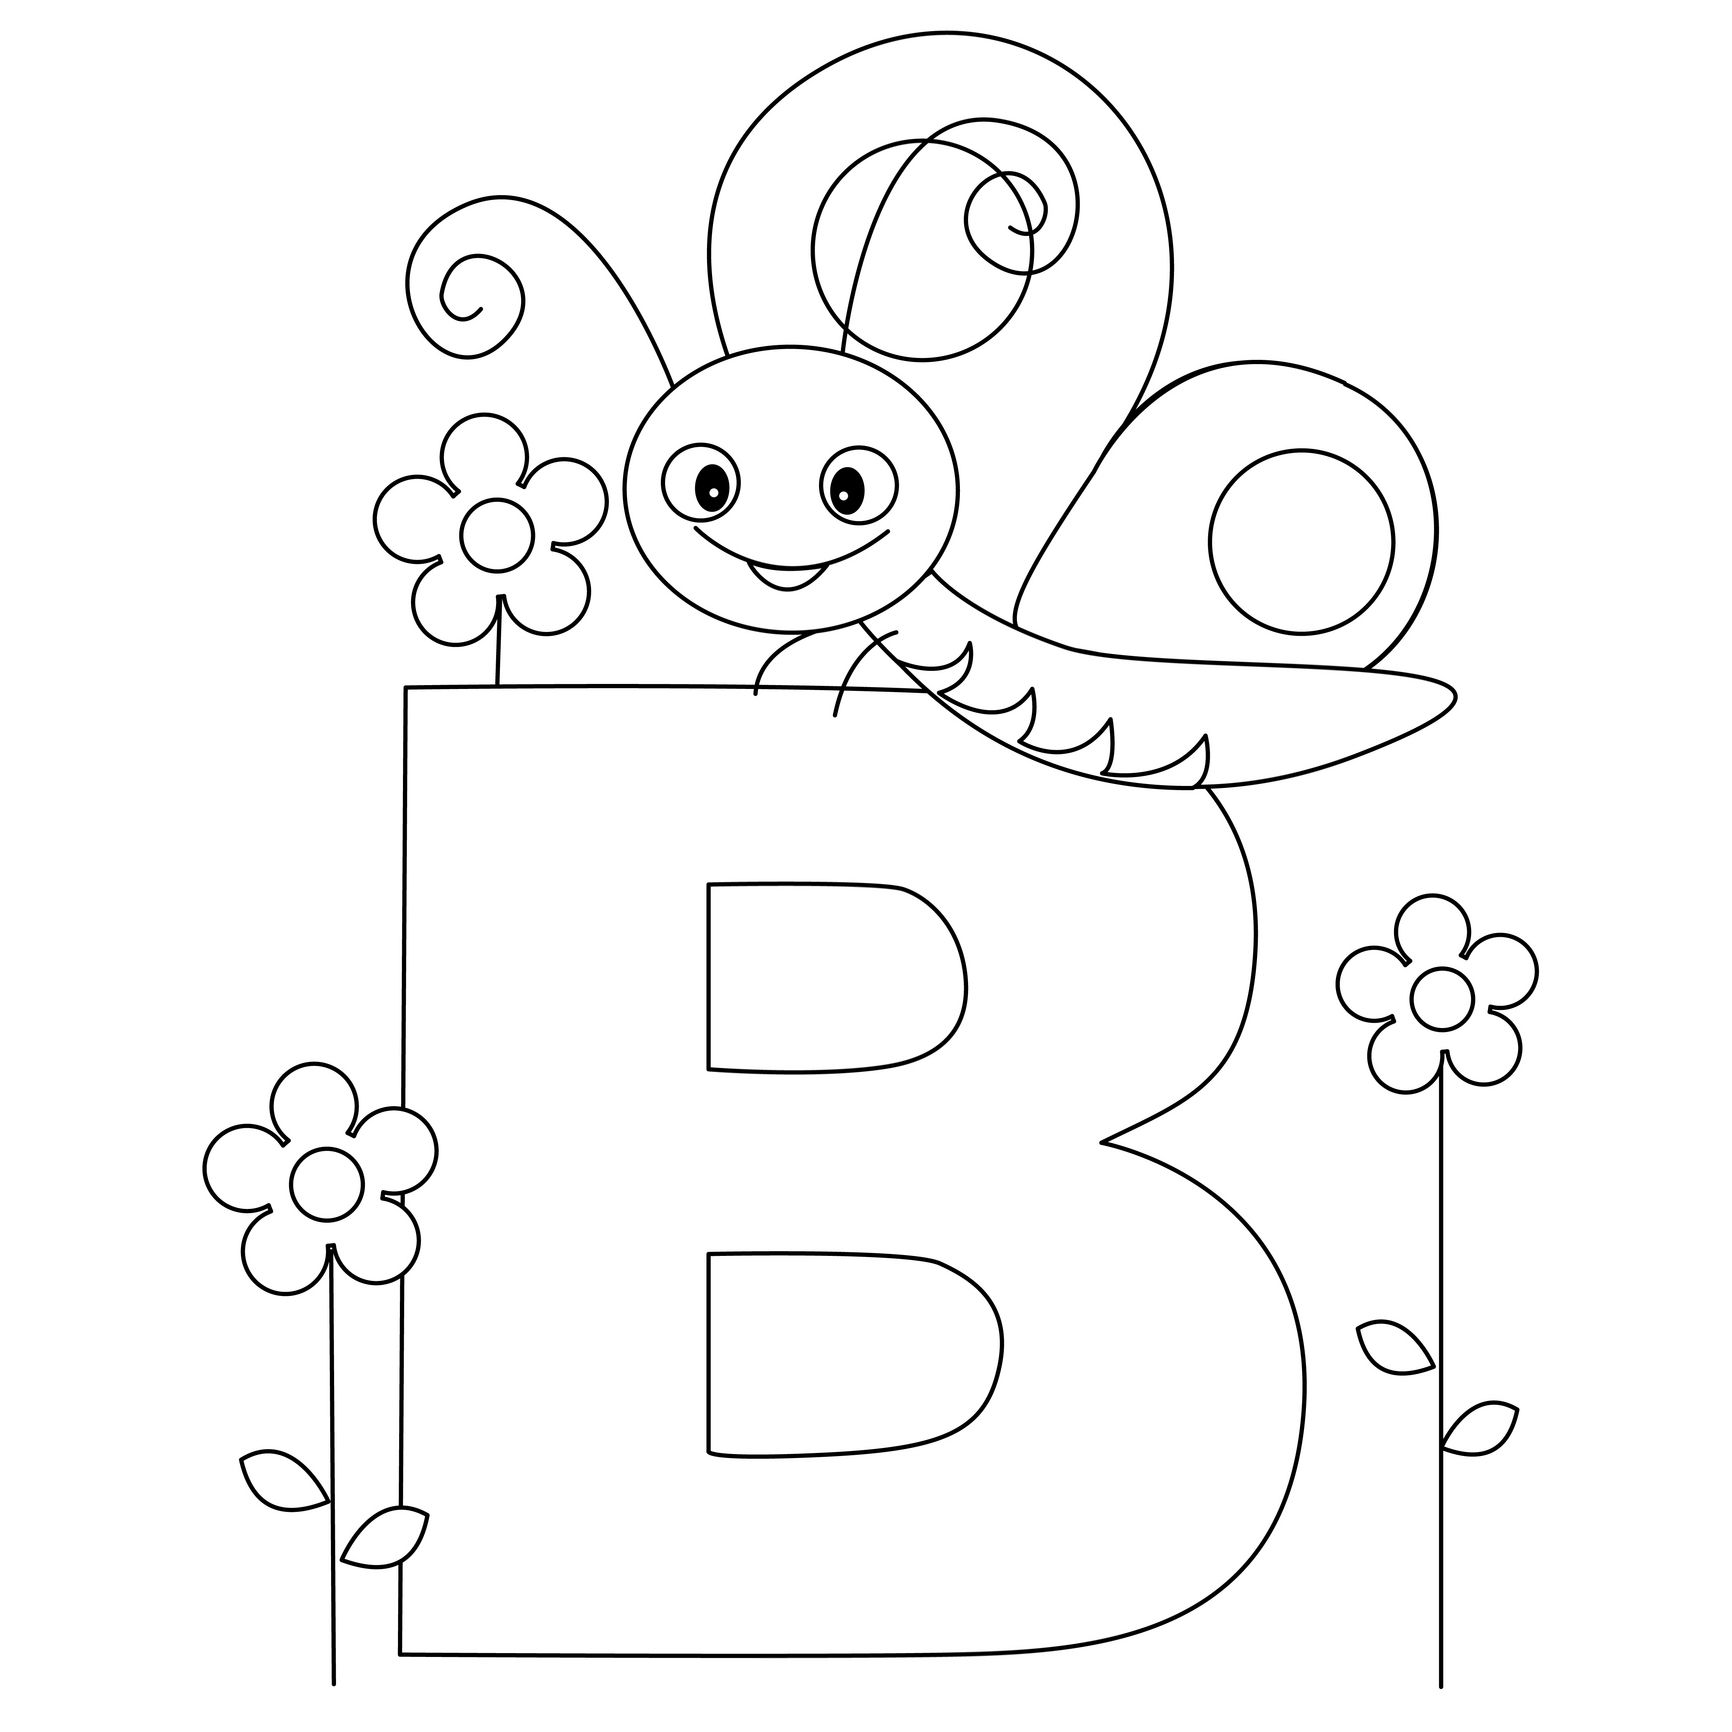 Alphabet coloring sheets for toddlers - Animal Alphabet Letter B Is For Butterfly Here S A Simple Alphabet Coloring Pagesanimal